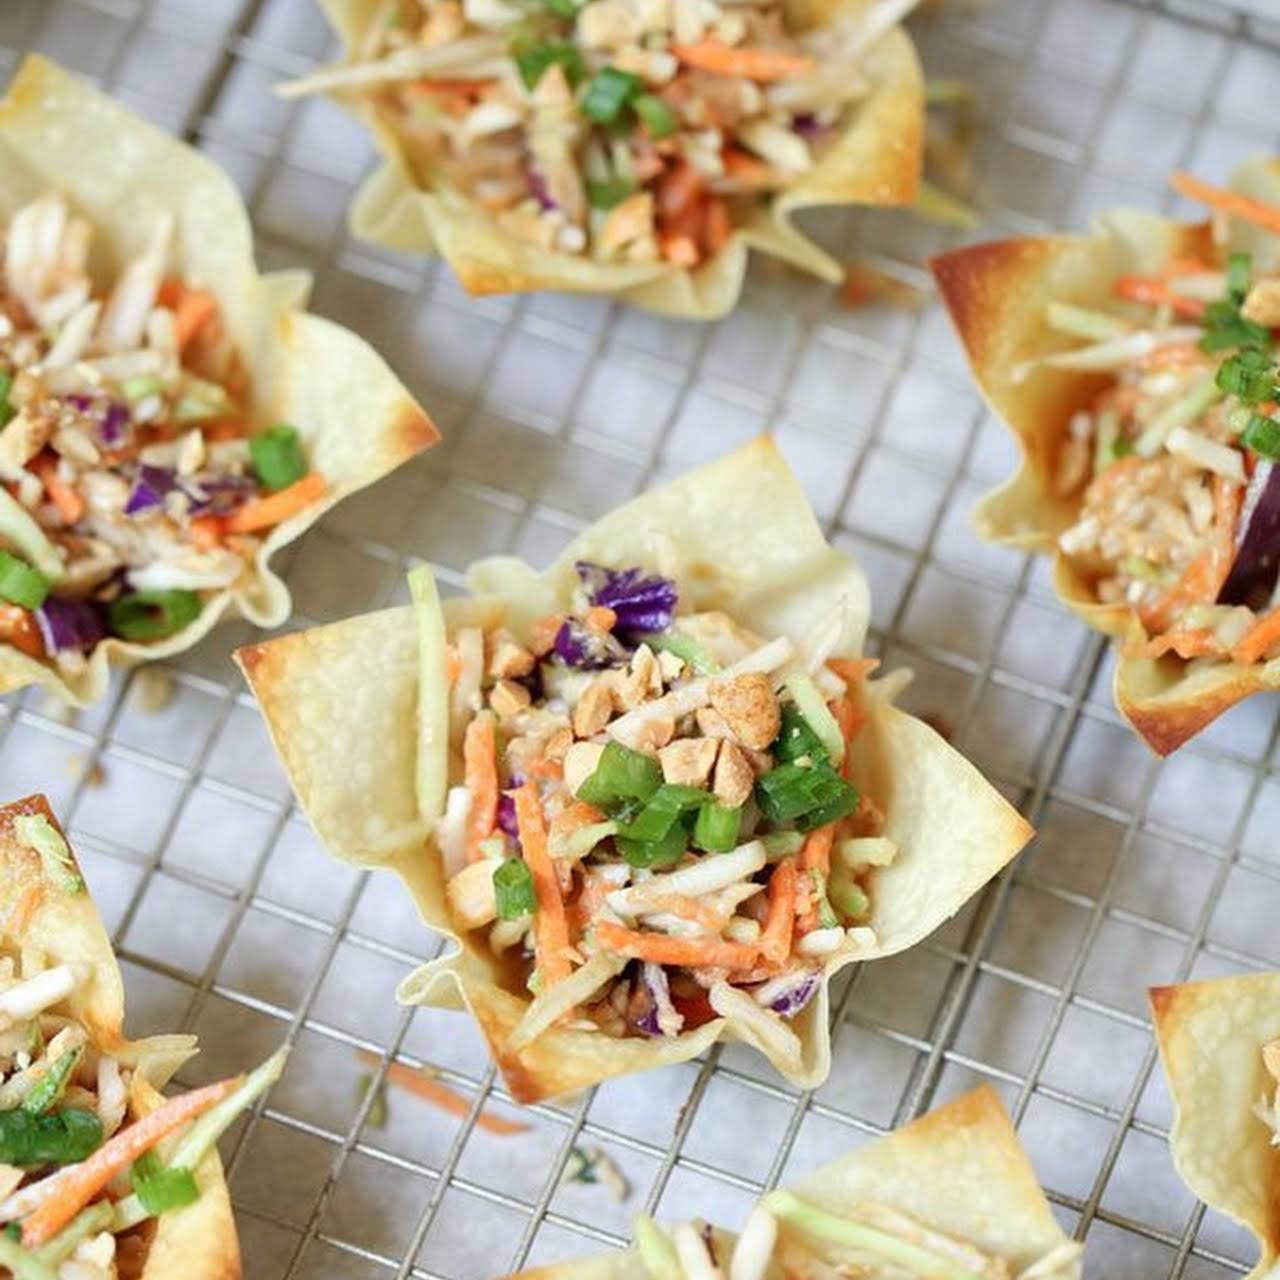 Asian Coleslaw  once Thai Peanut Dressing in Wonton Cups